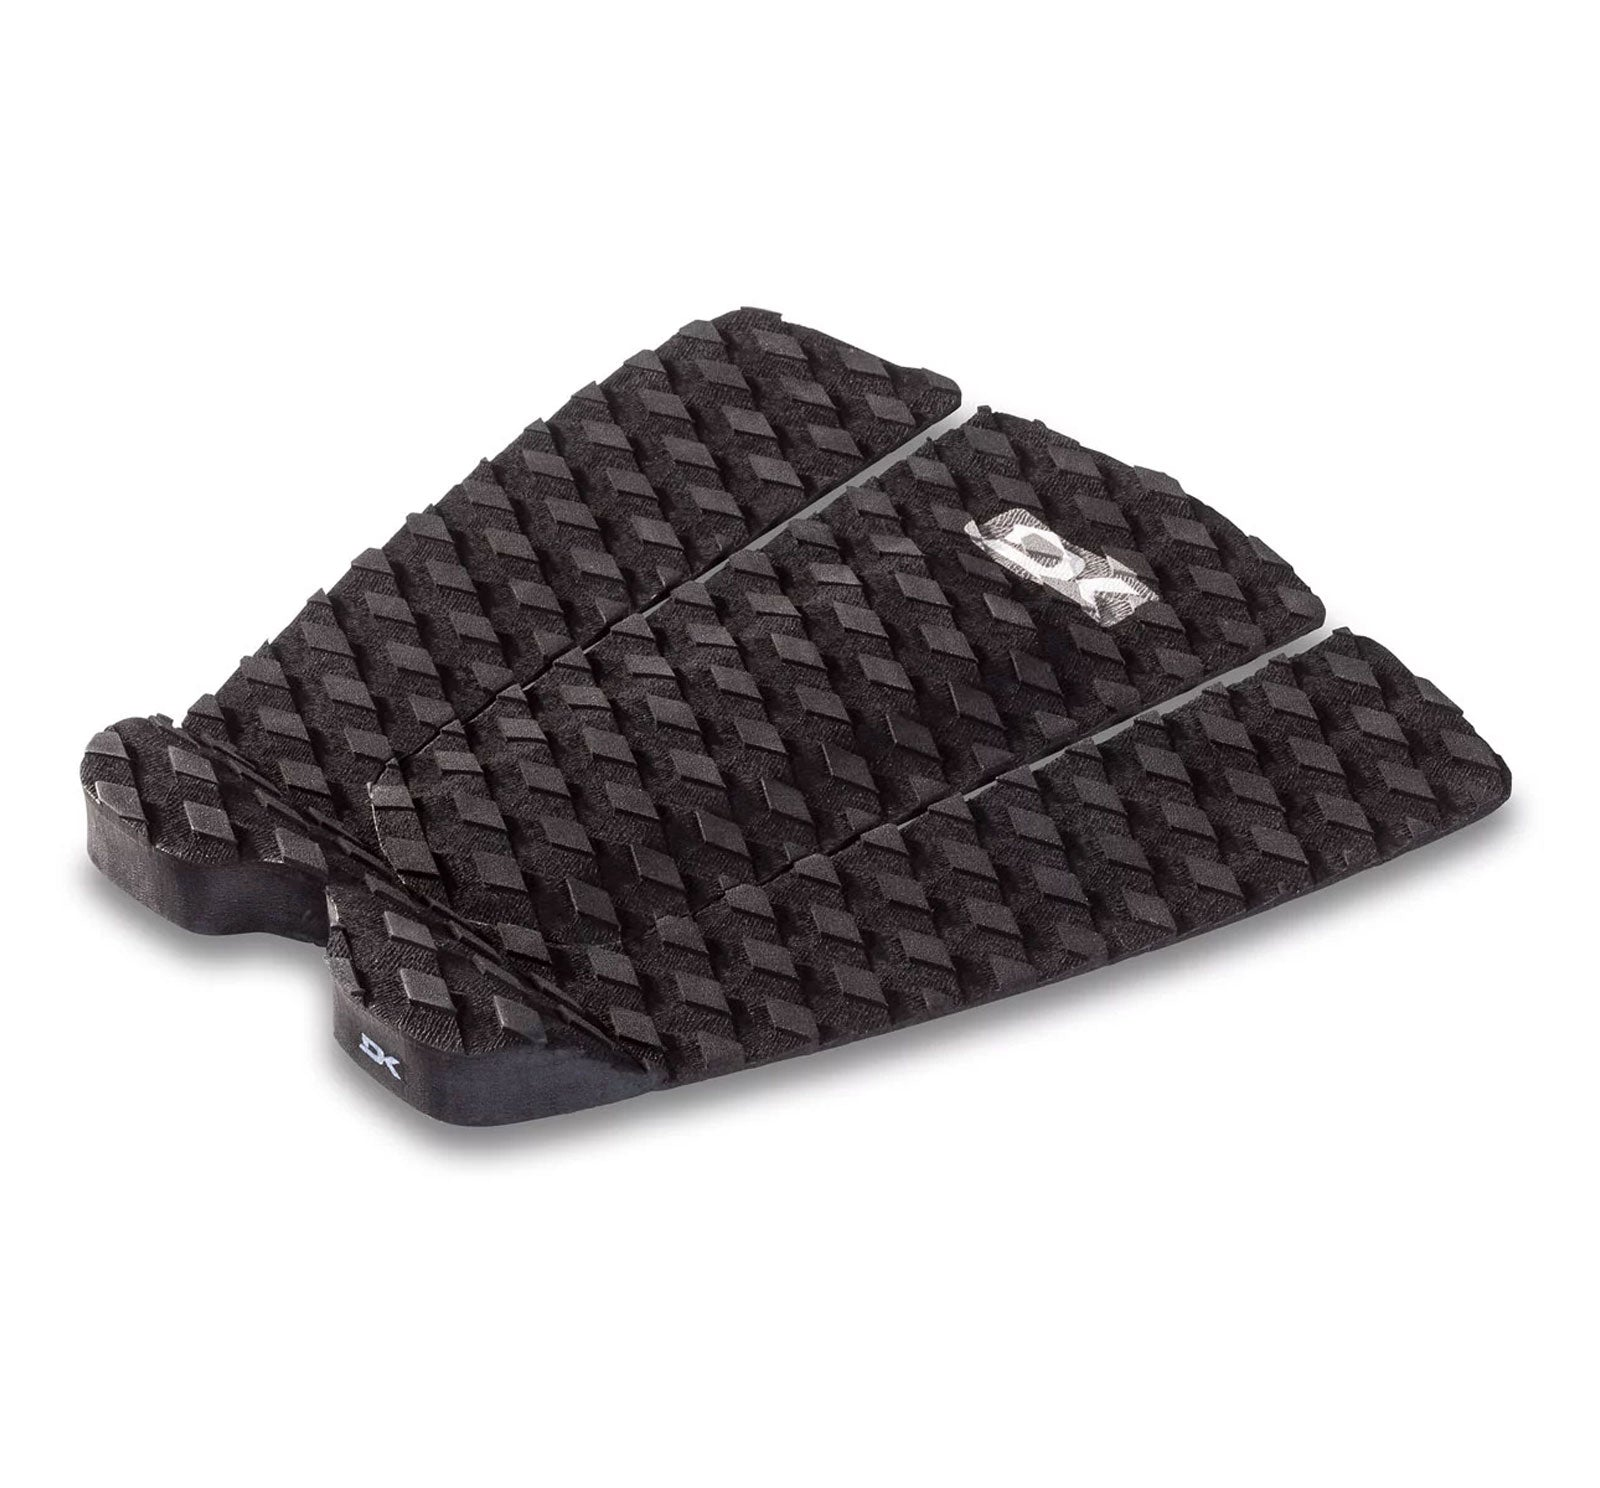 Dakine Andy Irons Friendly Foam Pro Surfboard Traction Pad